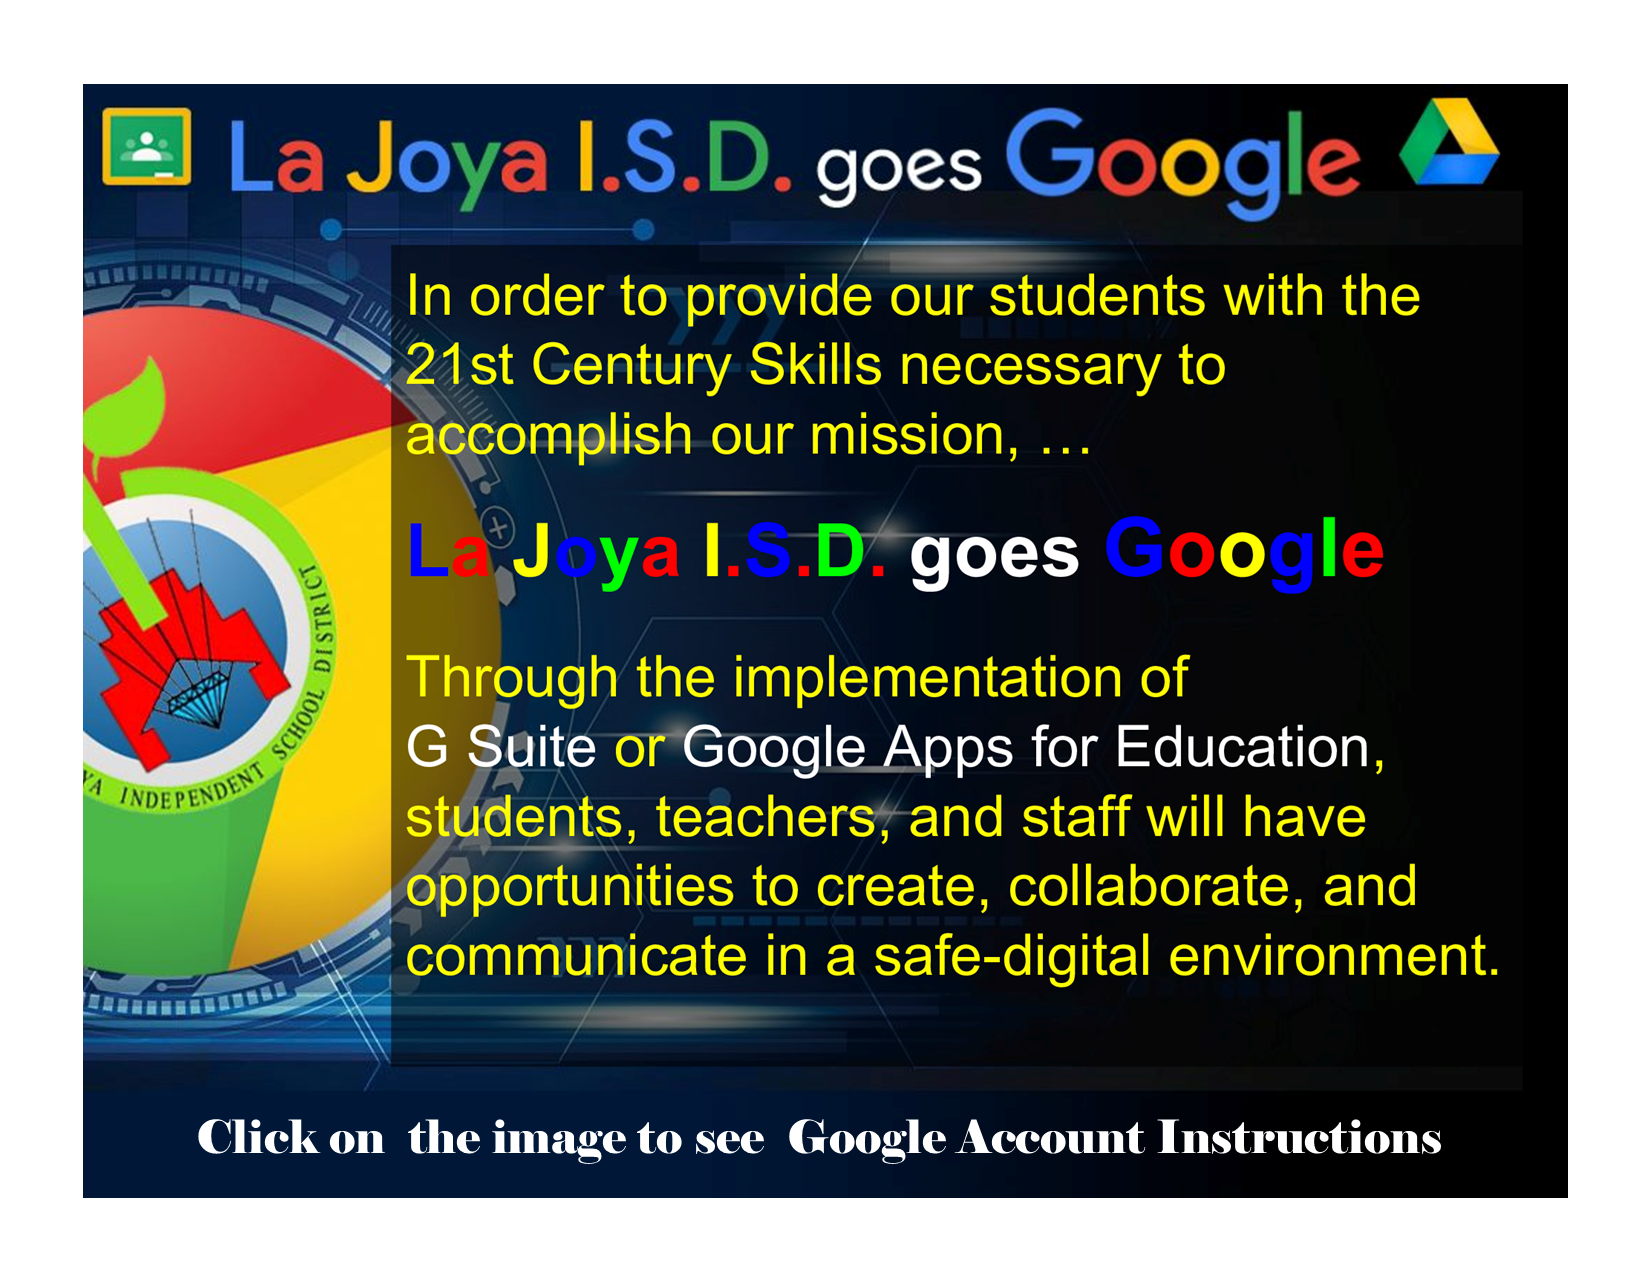 La Joya goes Google